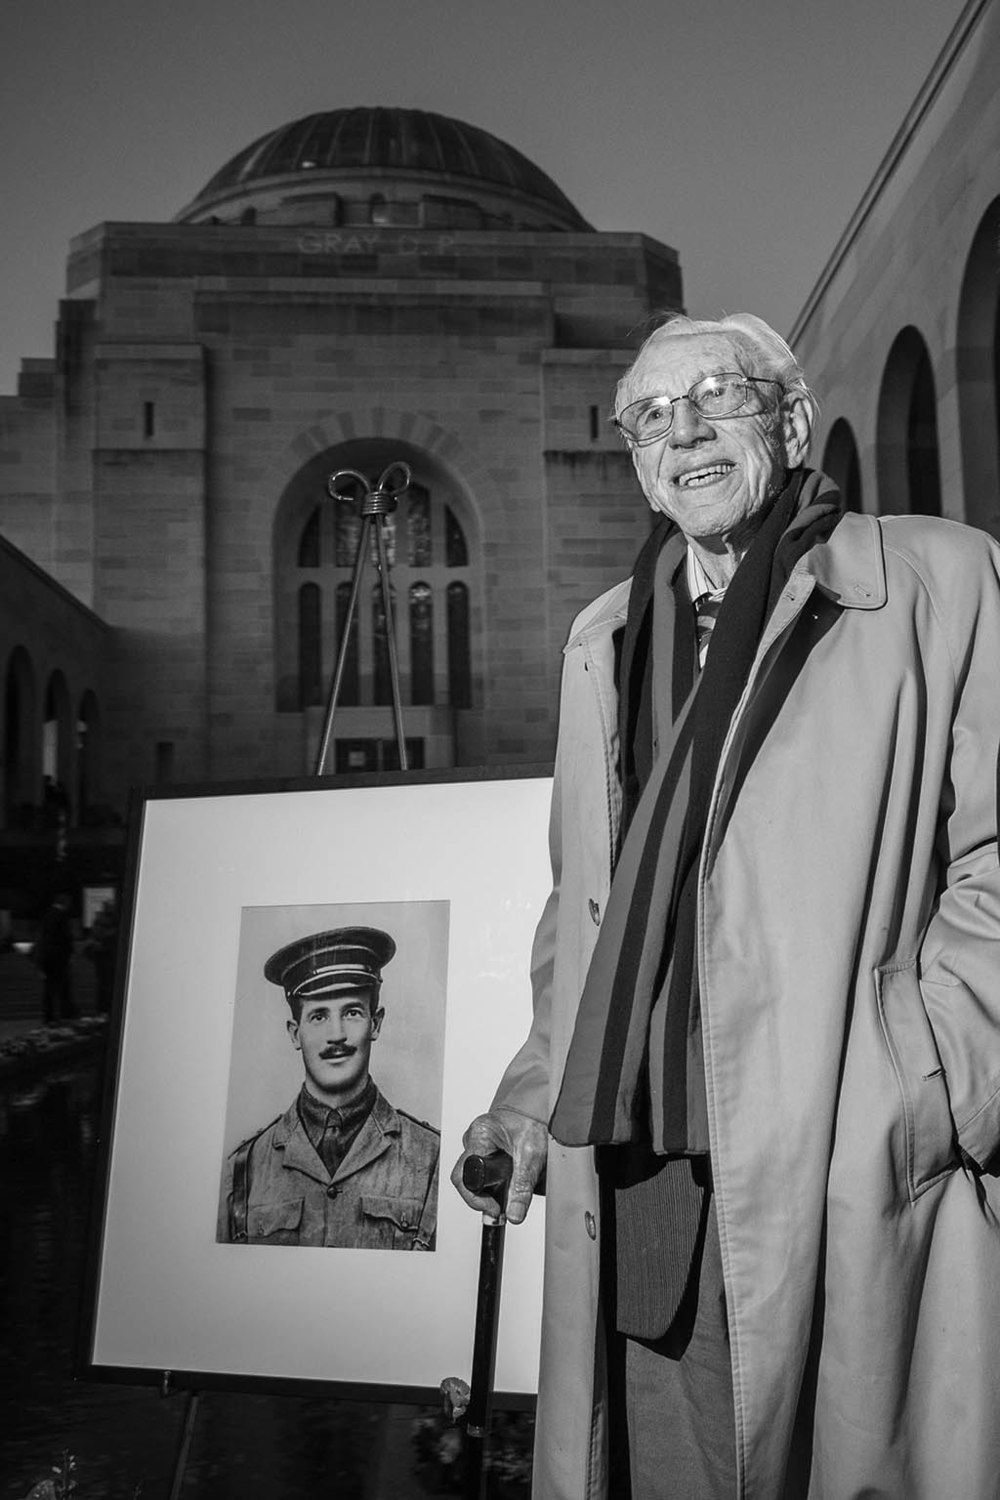 WW2 veteran Ron Metcalfe stands beside a portrait of WW1 soldier Keith Heritage.